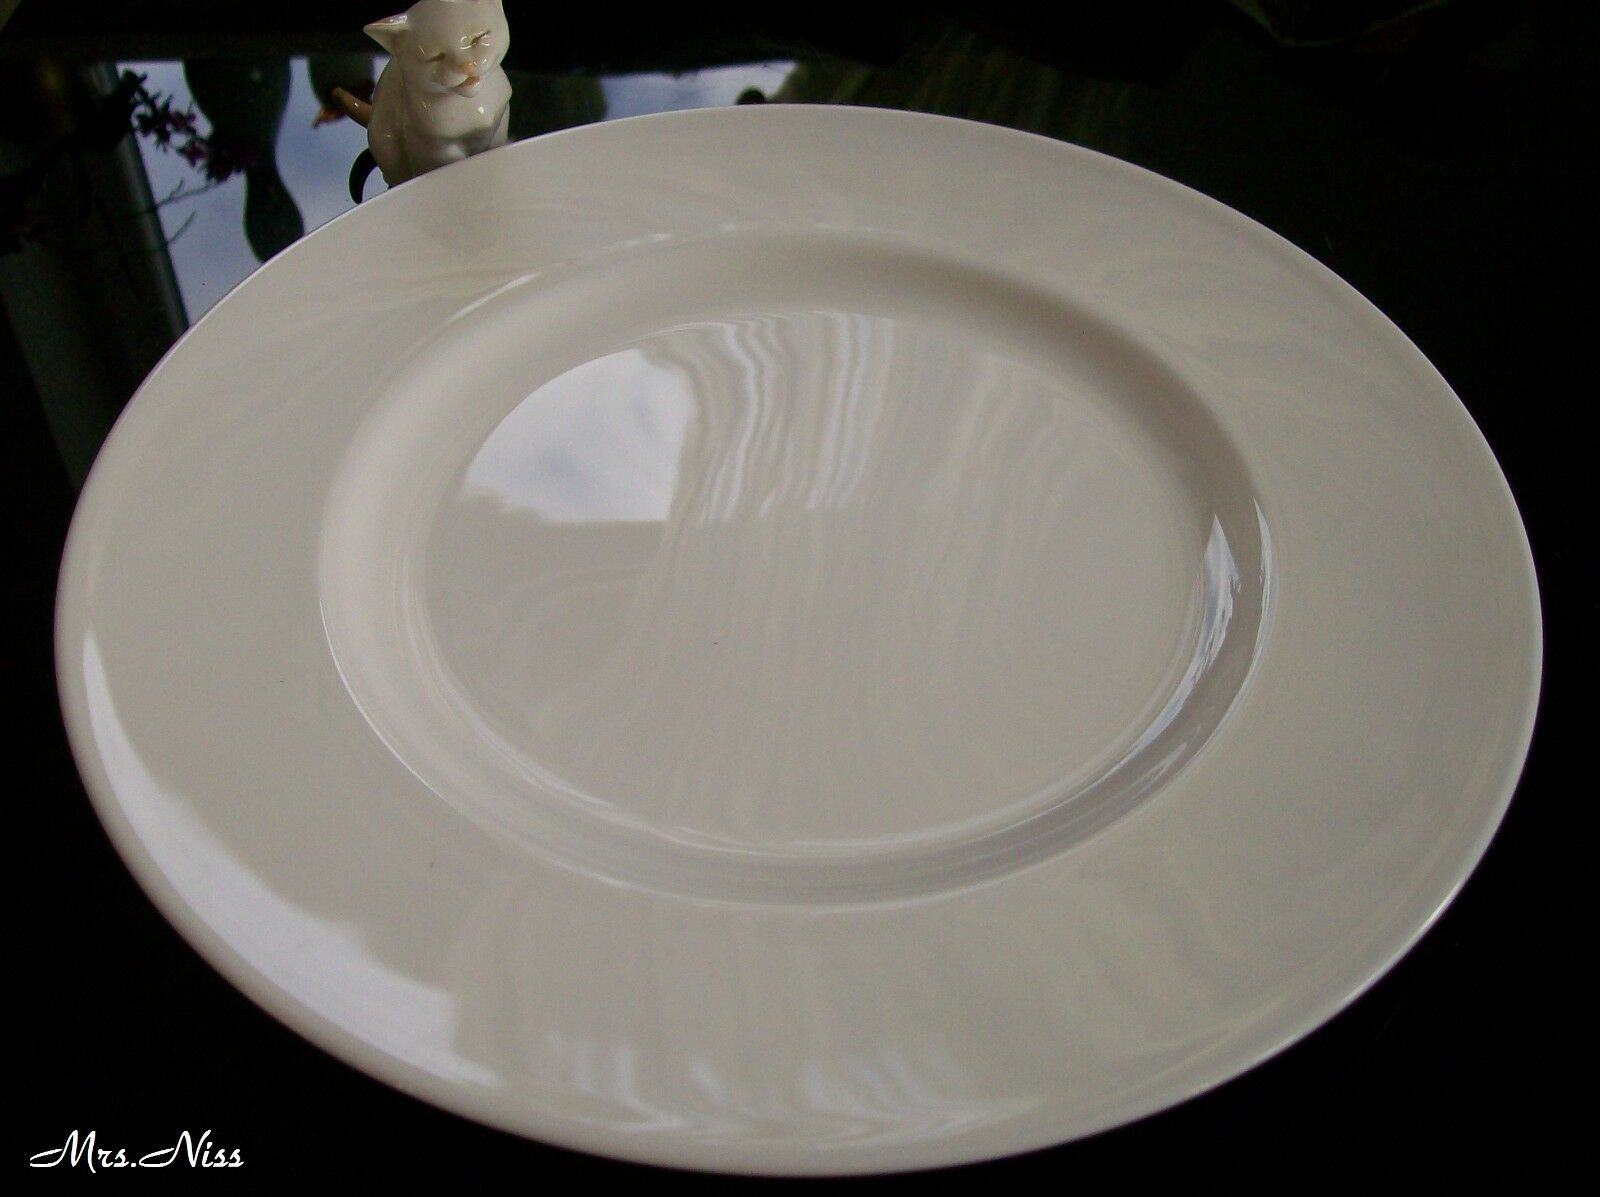 Rosenthal blanc Curve Blanc 4 x Place Assiette 31 cm  1 a ARTICLE NEUF